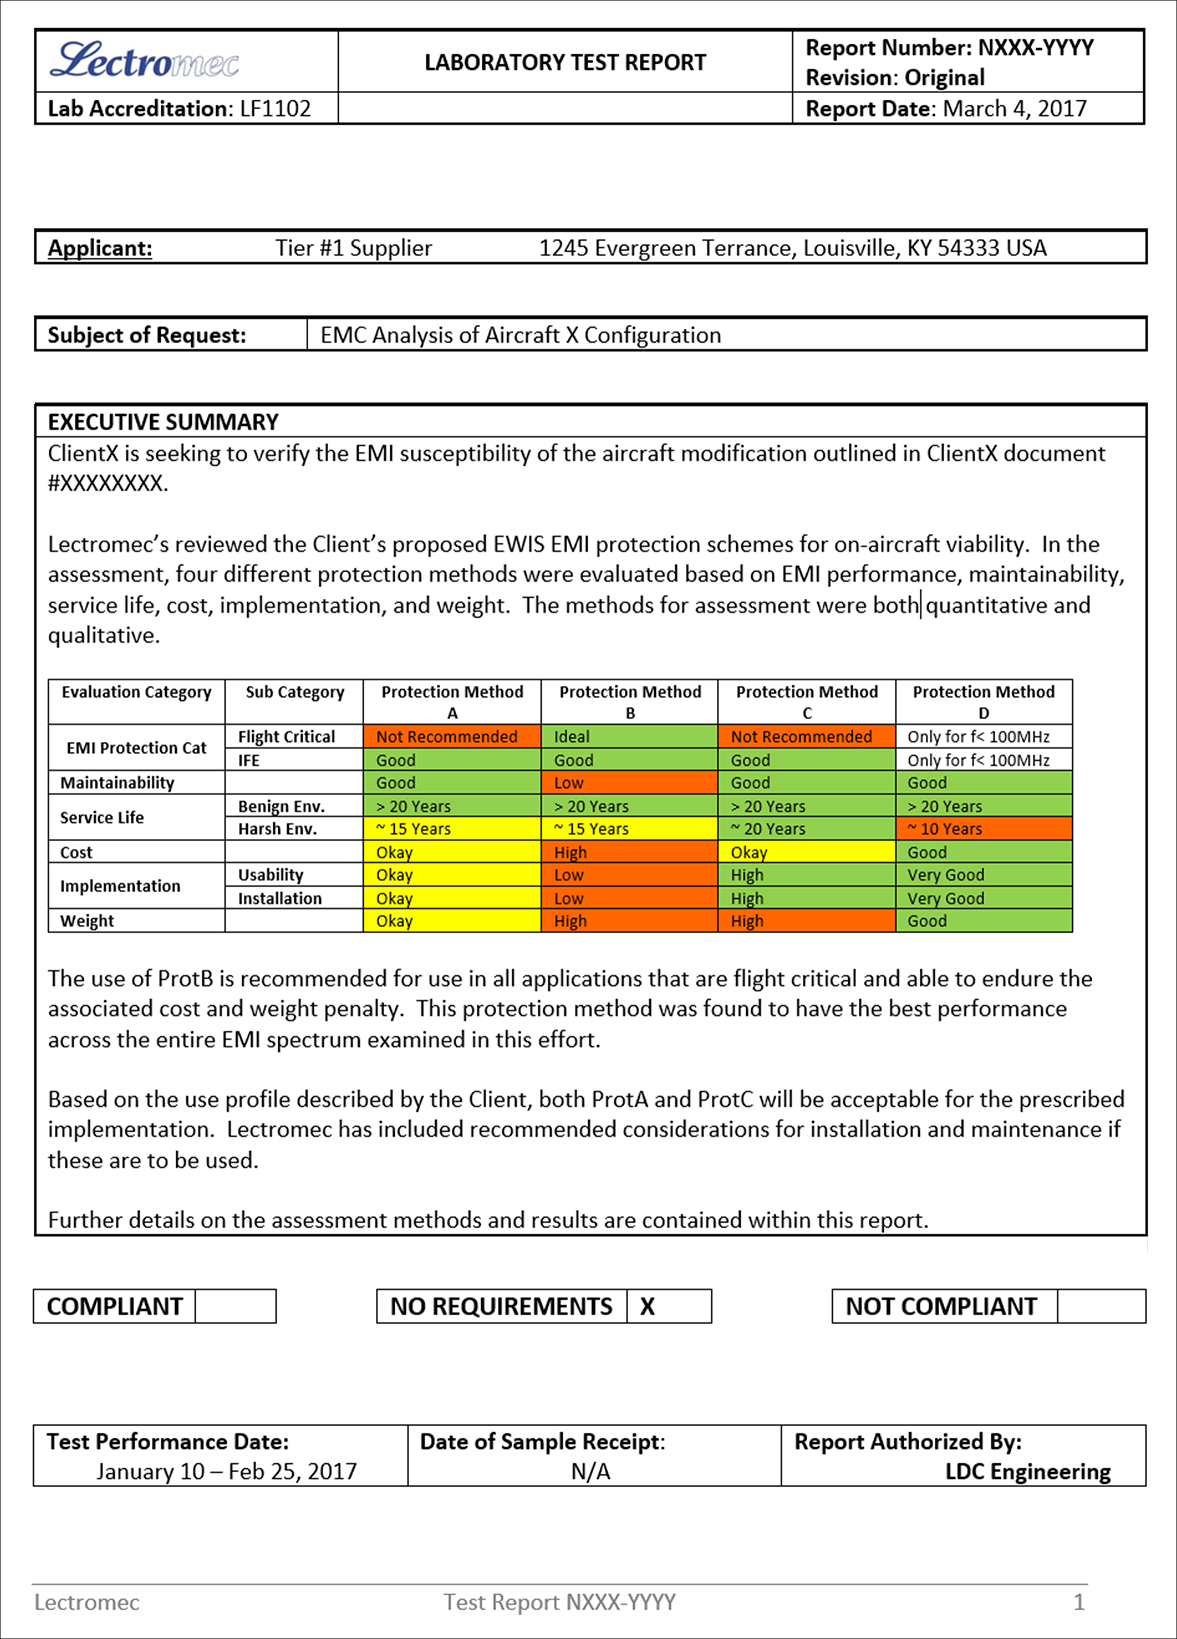 EMI Protection Assessment